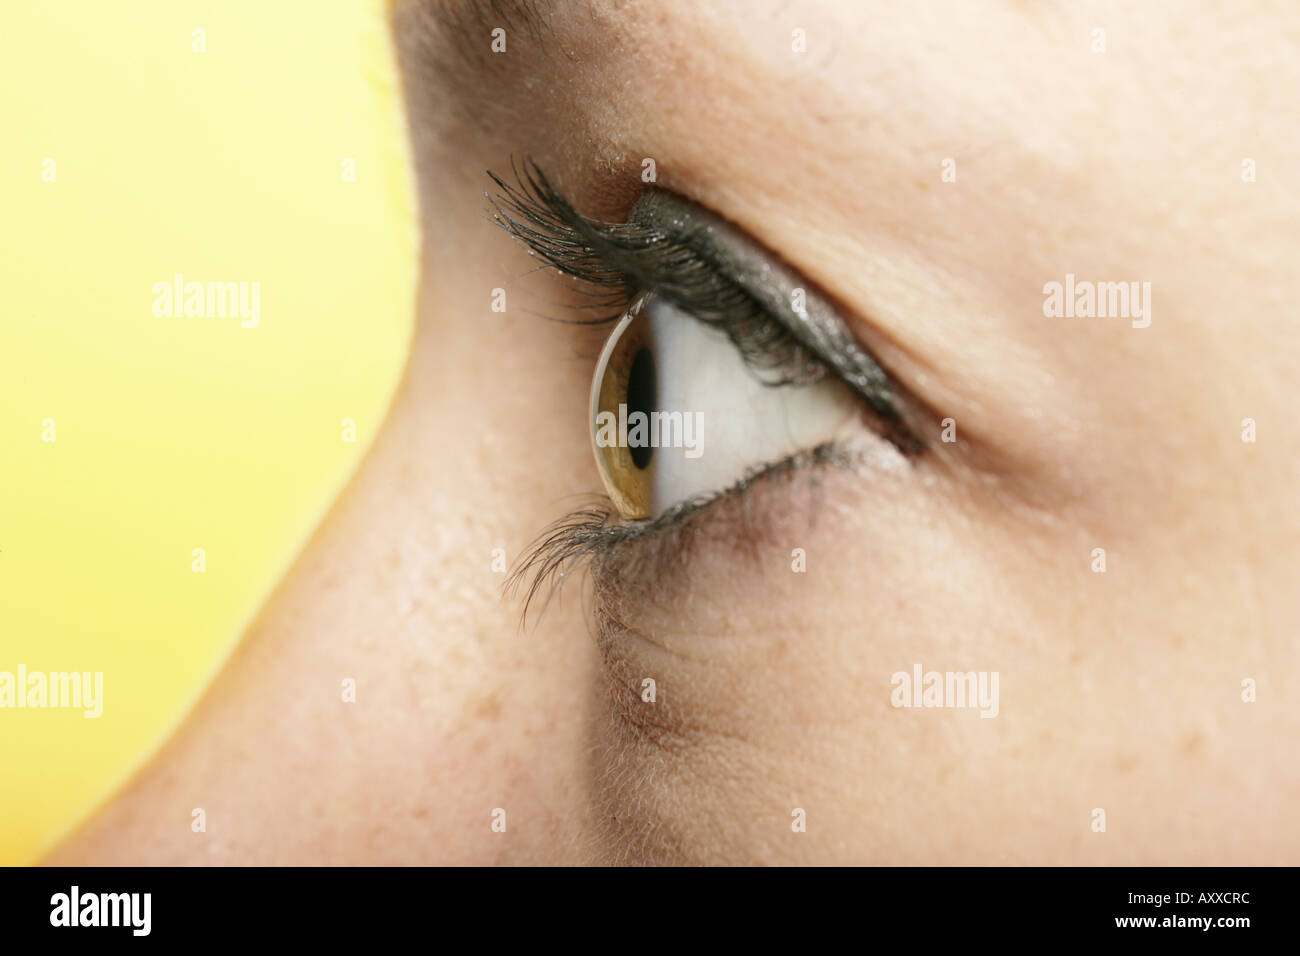 Anatomy Face Pupil Sclera Stock Photos & Anatomy Face Pupil Sclera ...